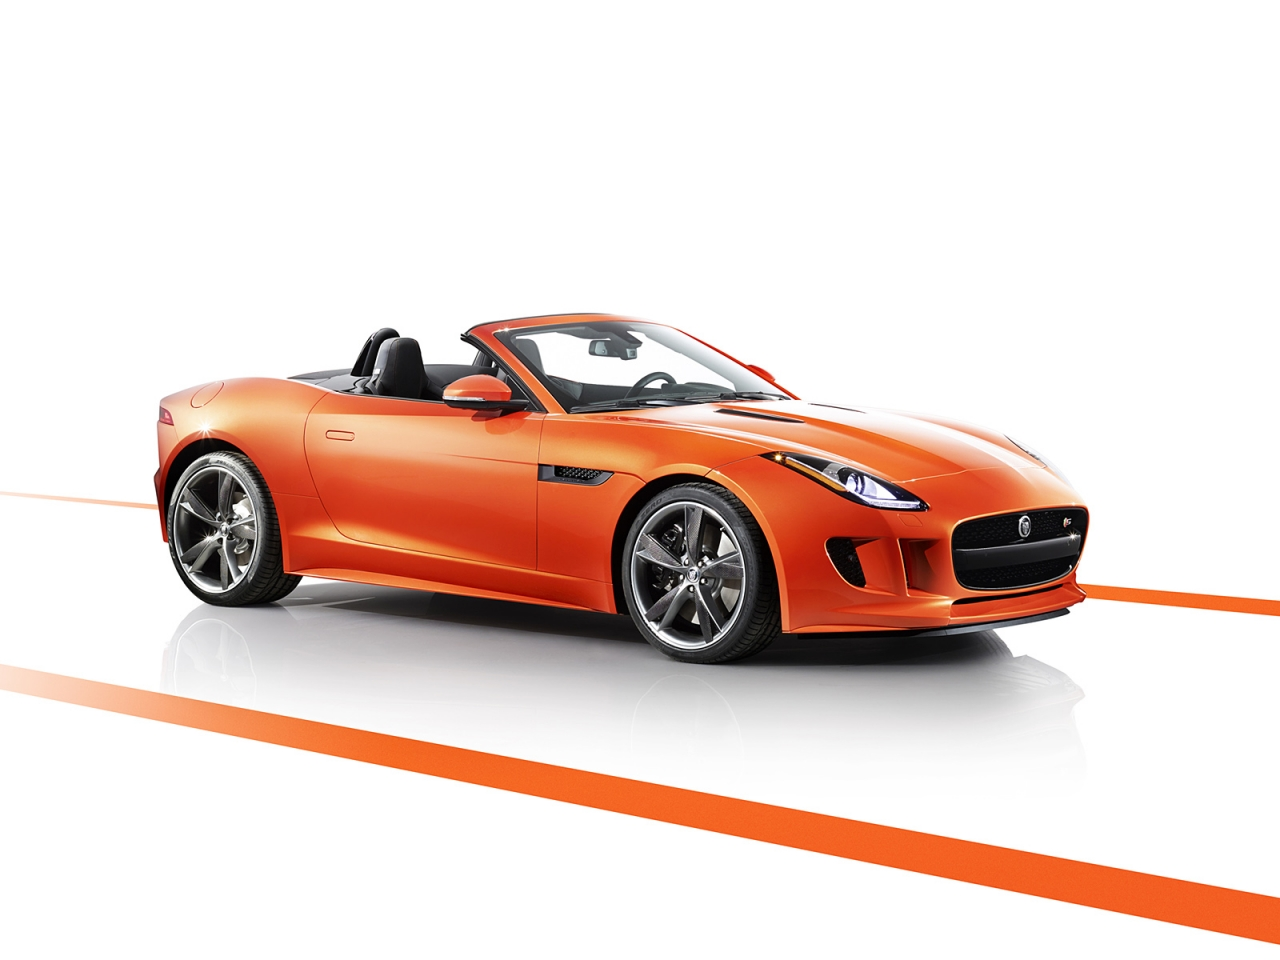 Jaguar F Type - 1280x960